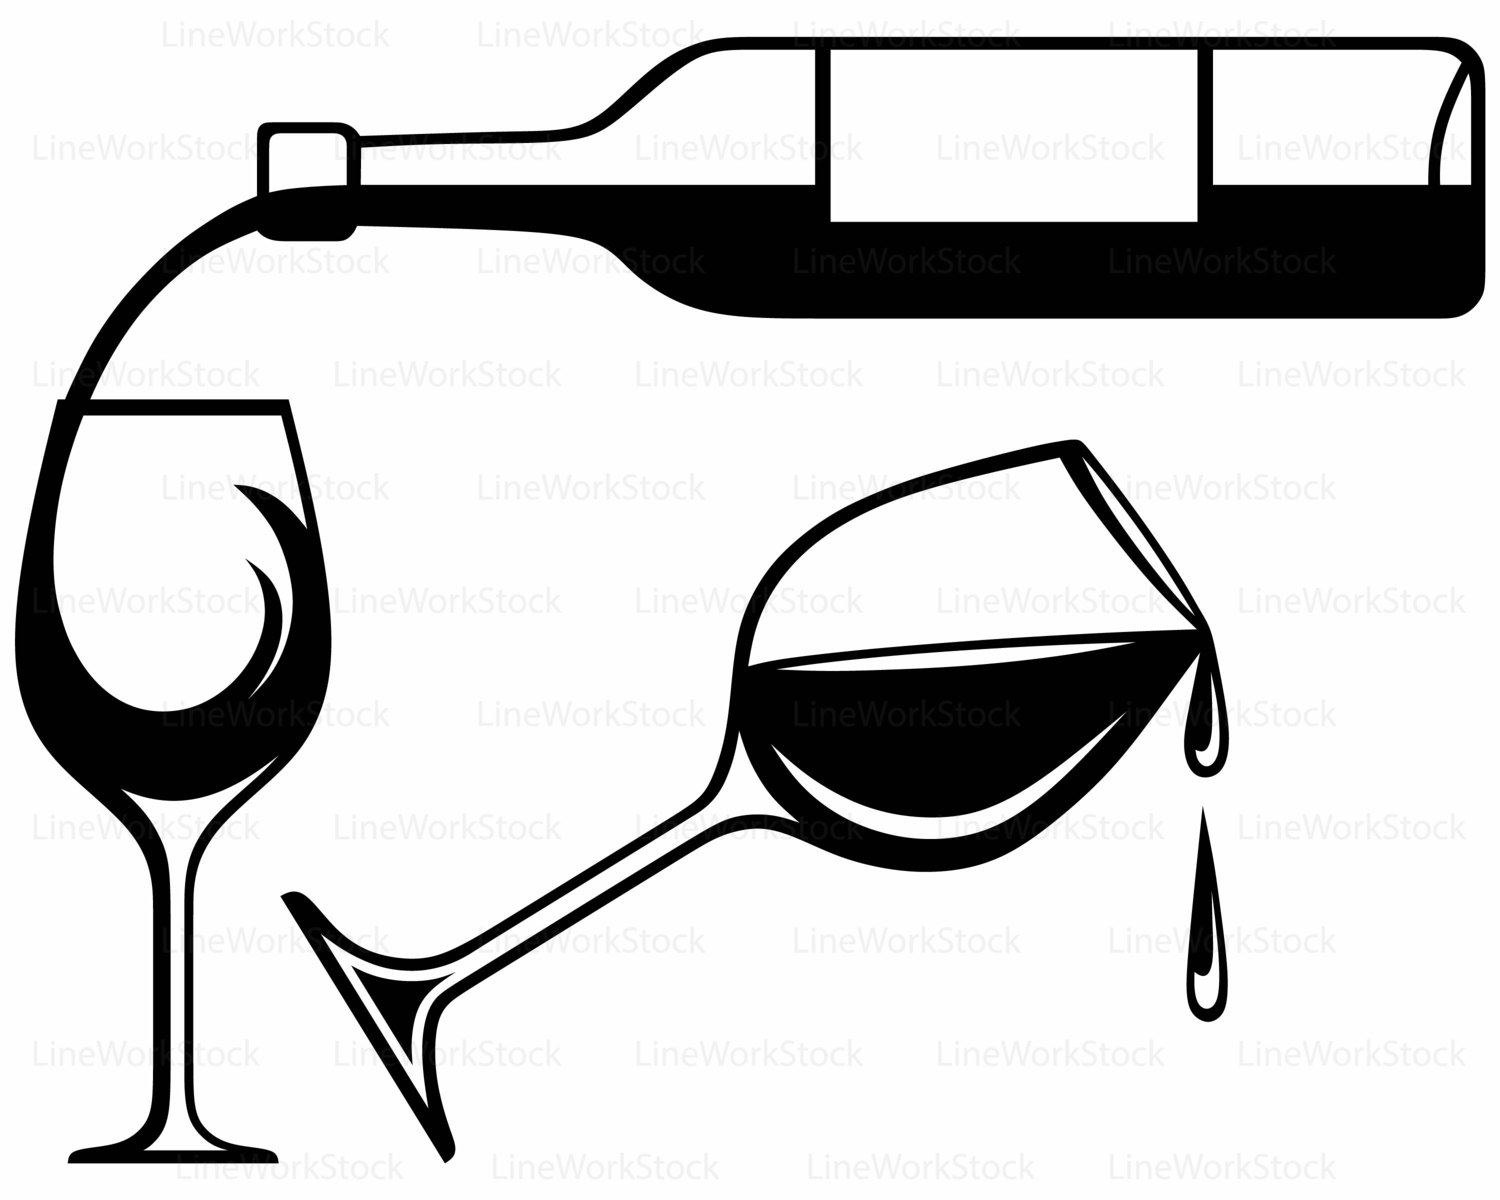 1500x1200 Wine Bottle Svg,drink Clipart,alcohol Svg,wine Silhouette,wine